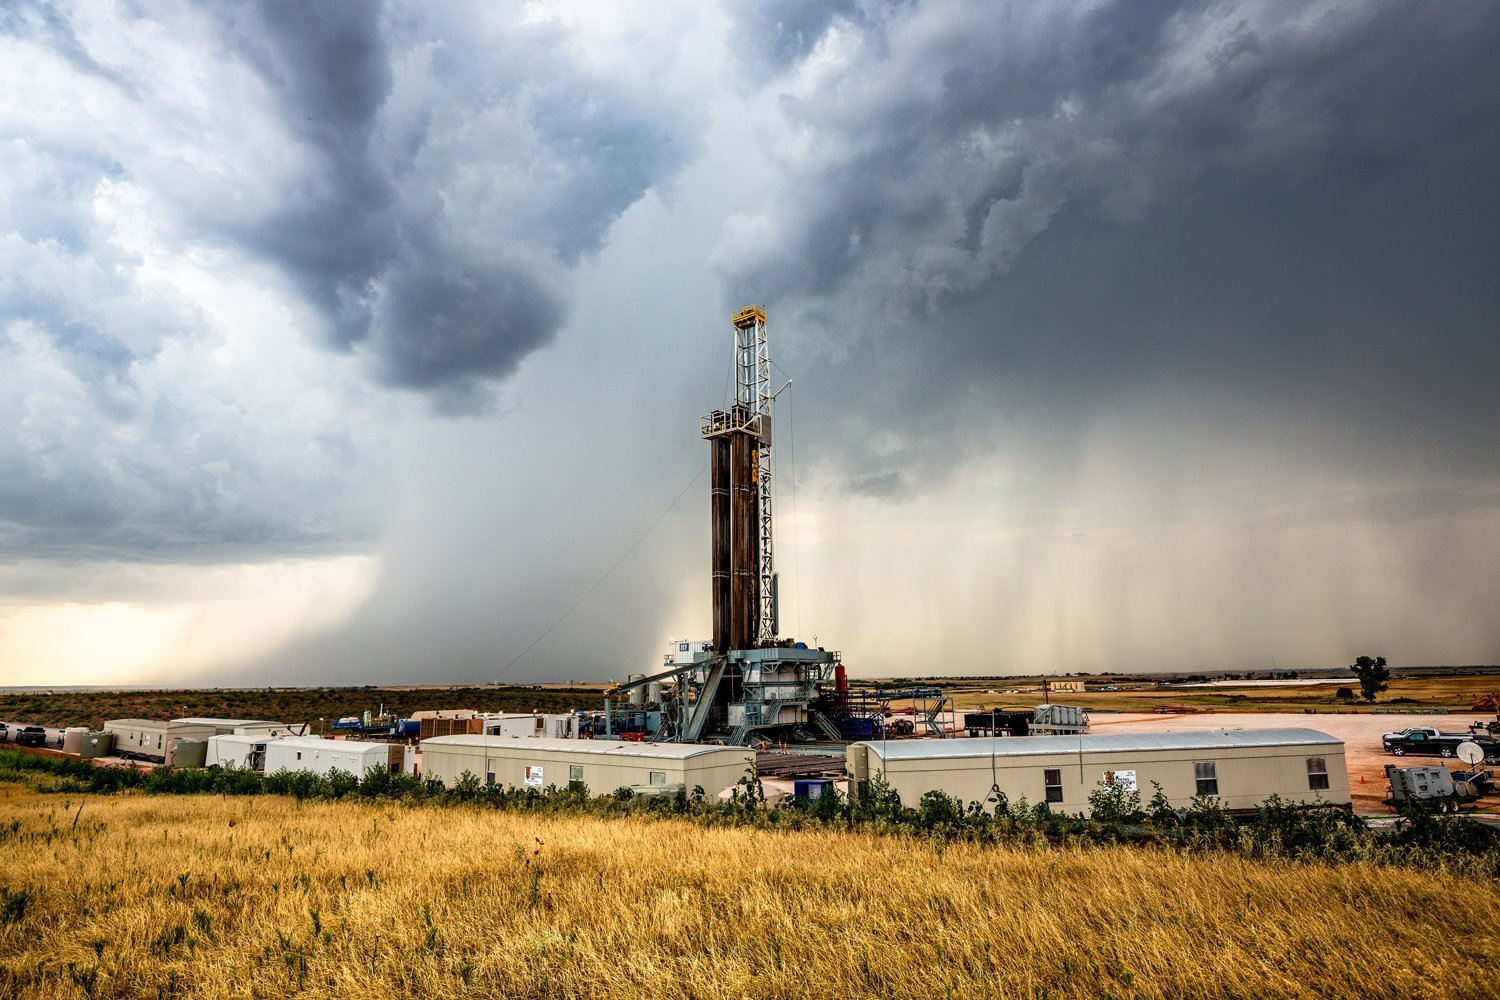 Oil Rig Photography Art Print - Picture of Drilling Rig Derrick and Storm in Western Oklahoma Oilfield Decor 5x7 to 30x45